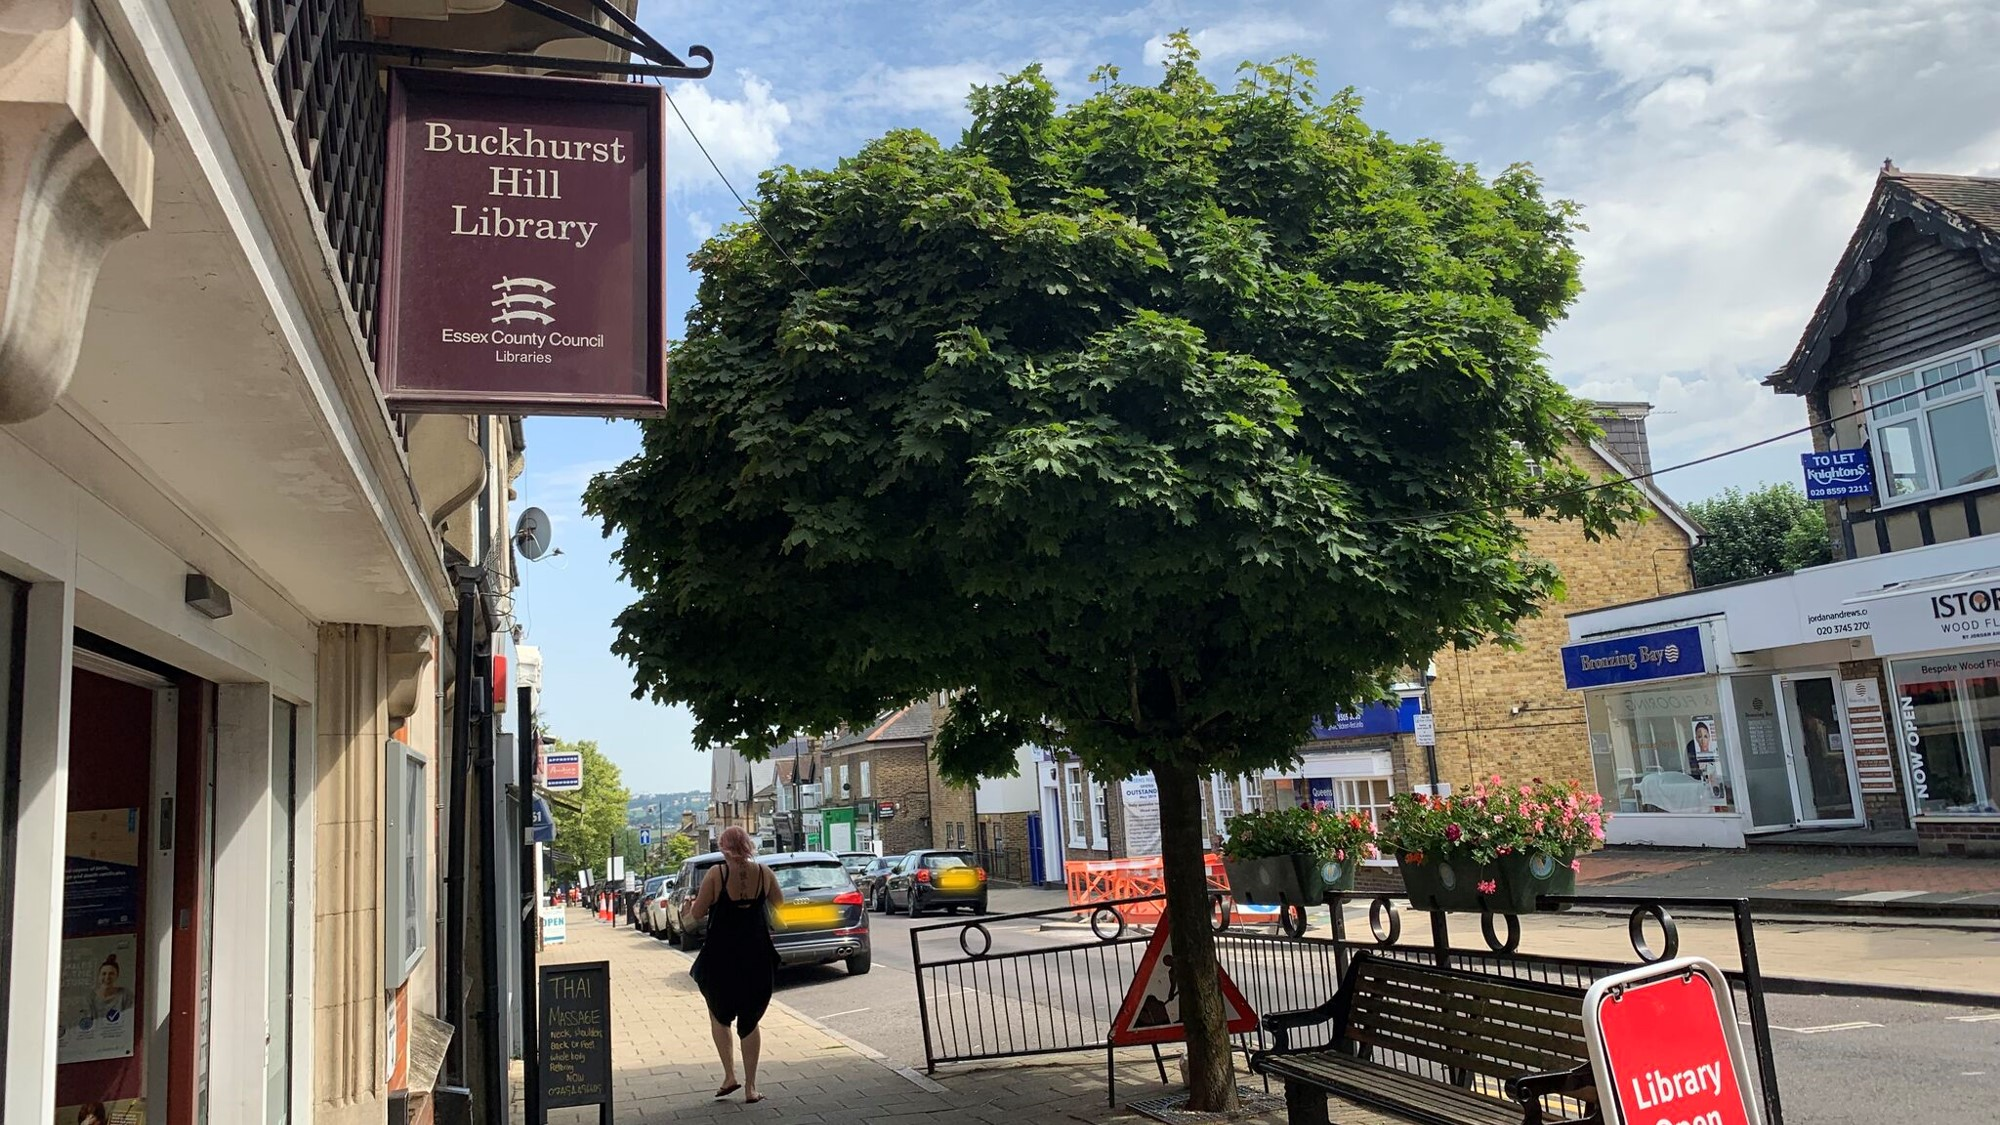 Buckhurst-Hill-Library-and-Parish-Council-Offices.jpeg